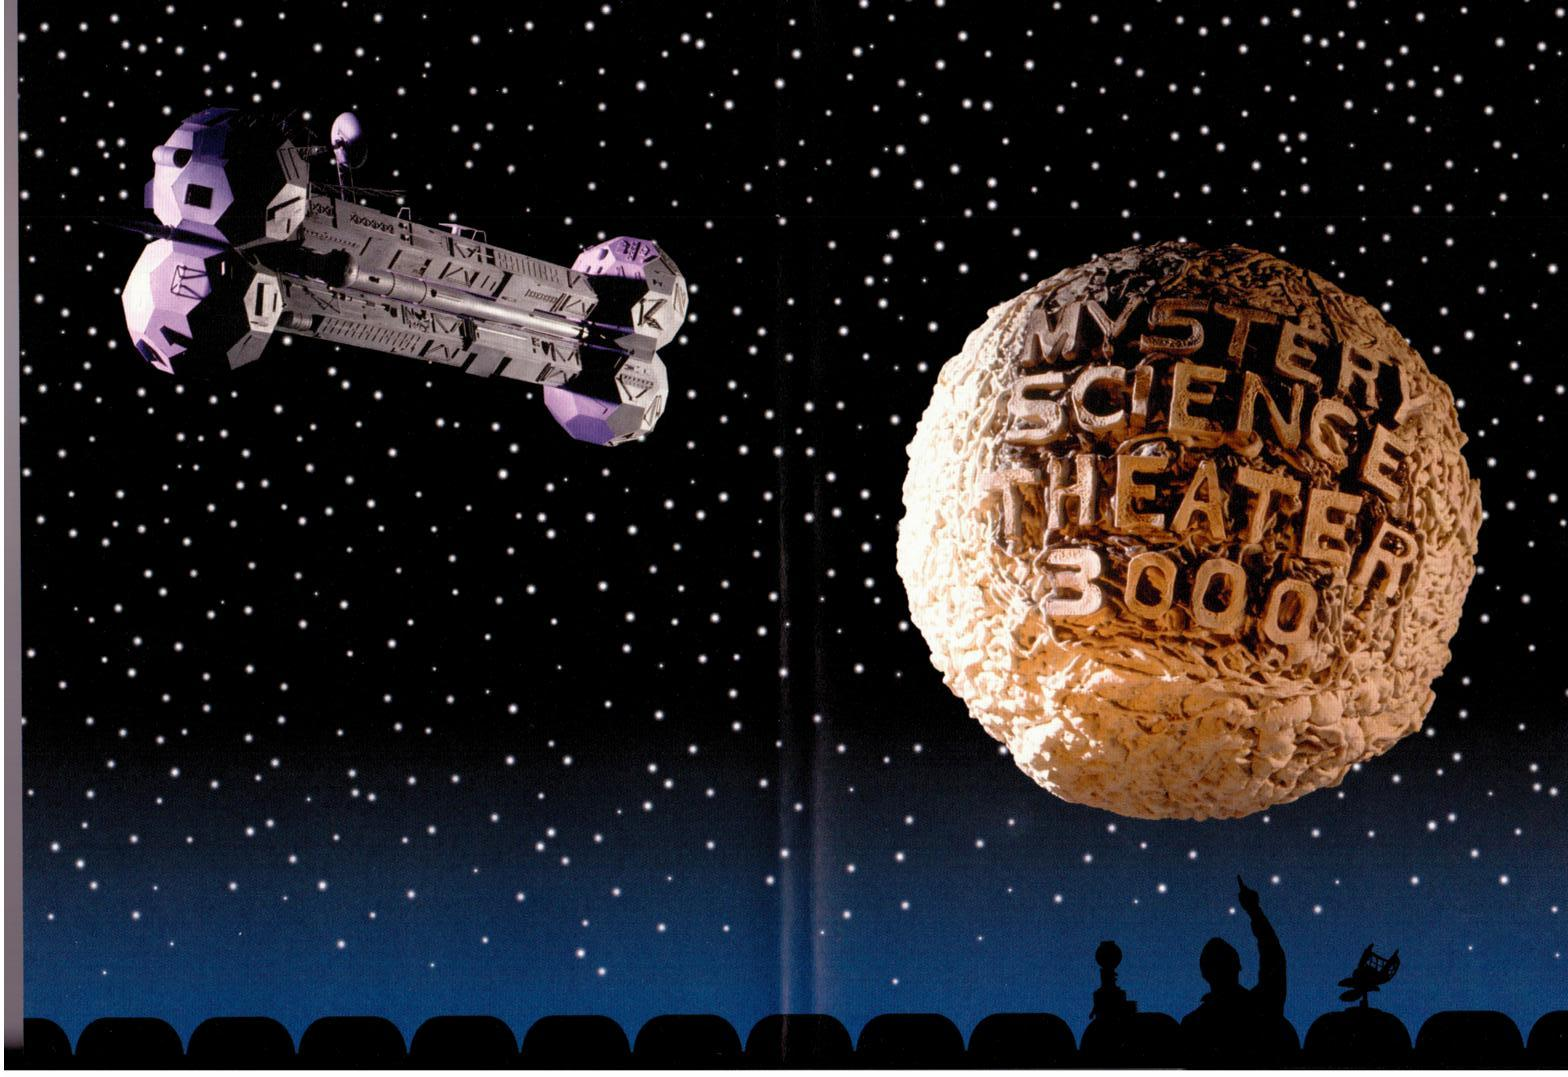 Mystery Quotes Wallpaper Download Mst3k Wallpaper Gallery